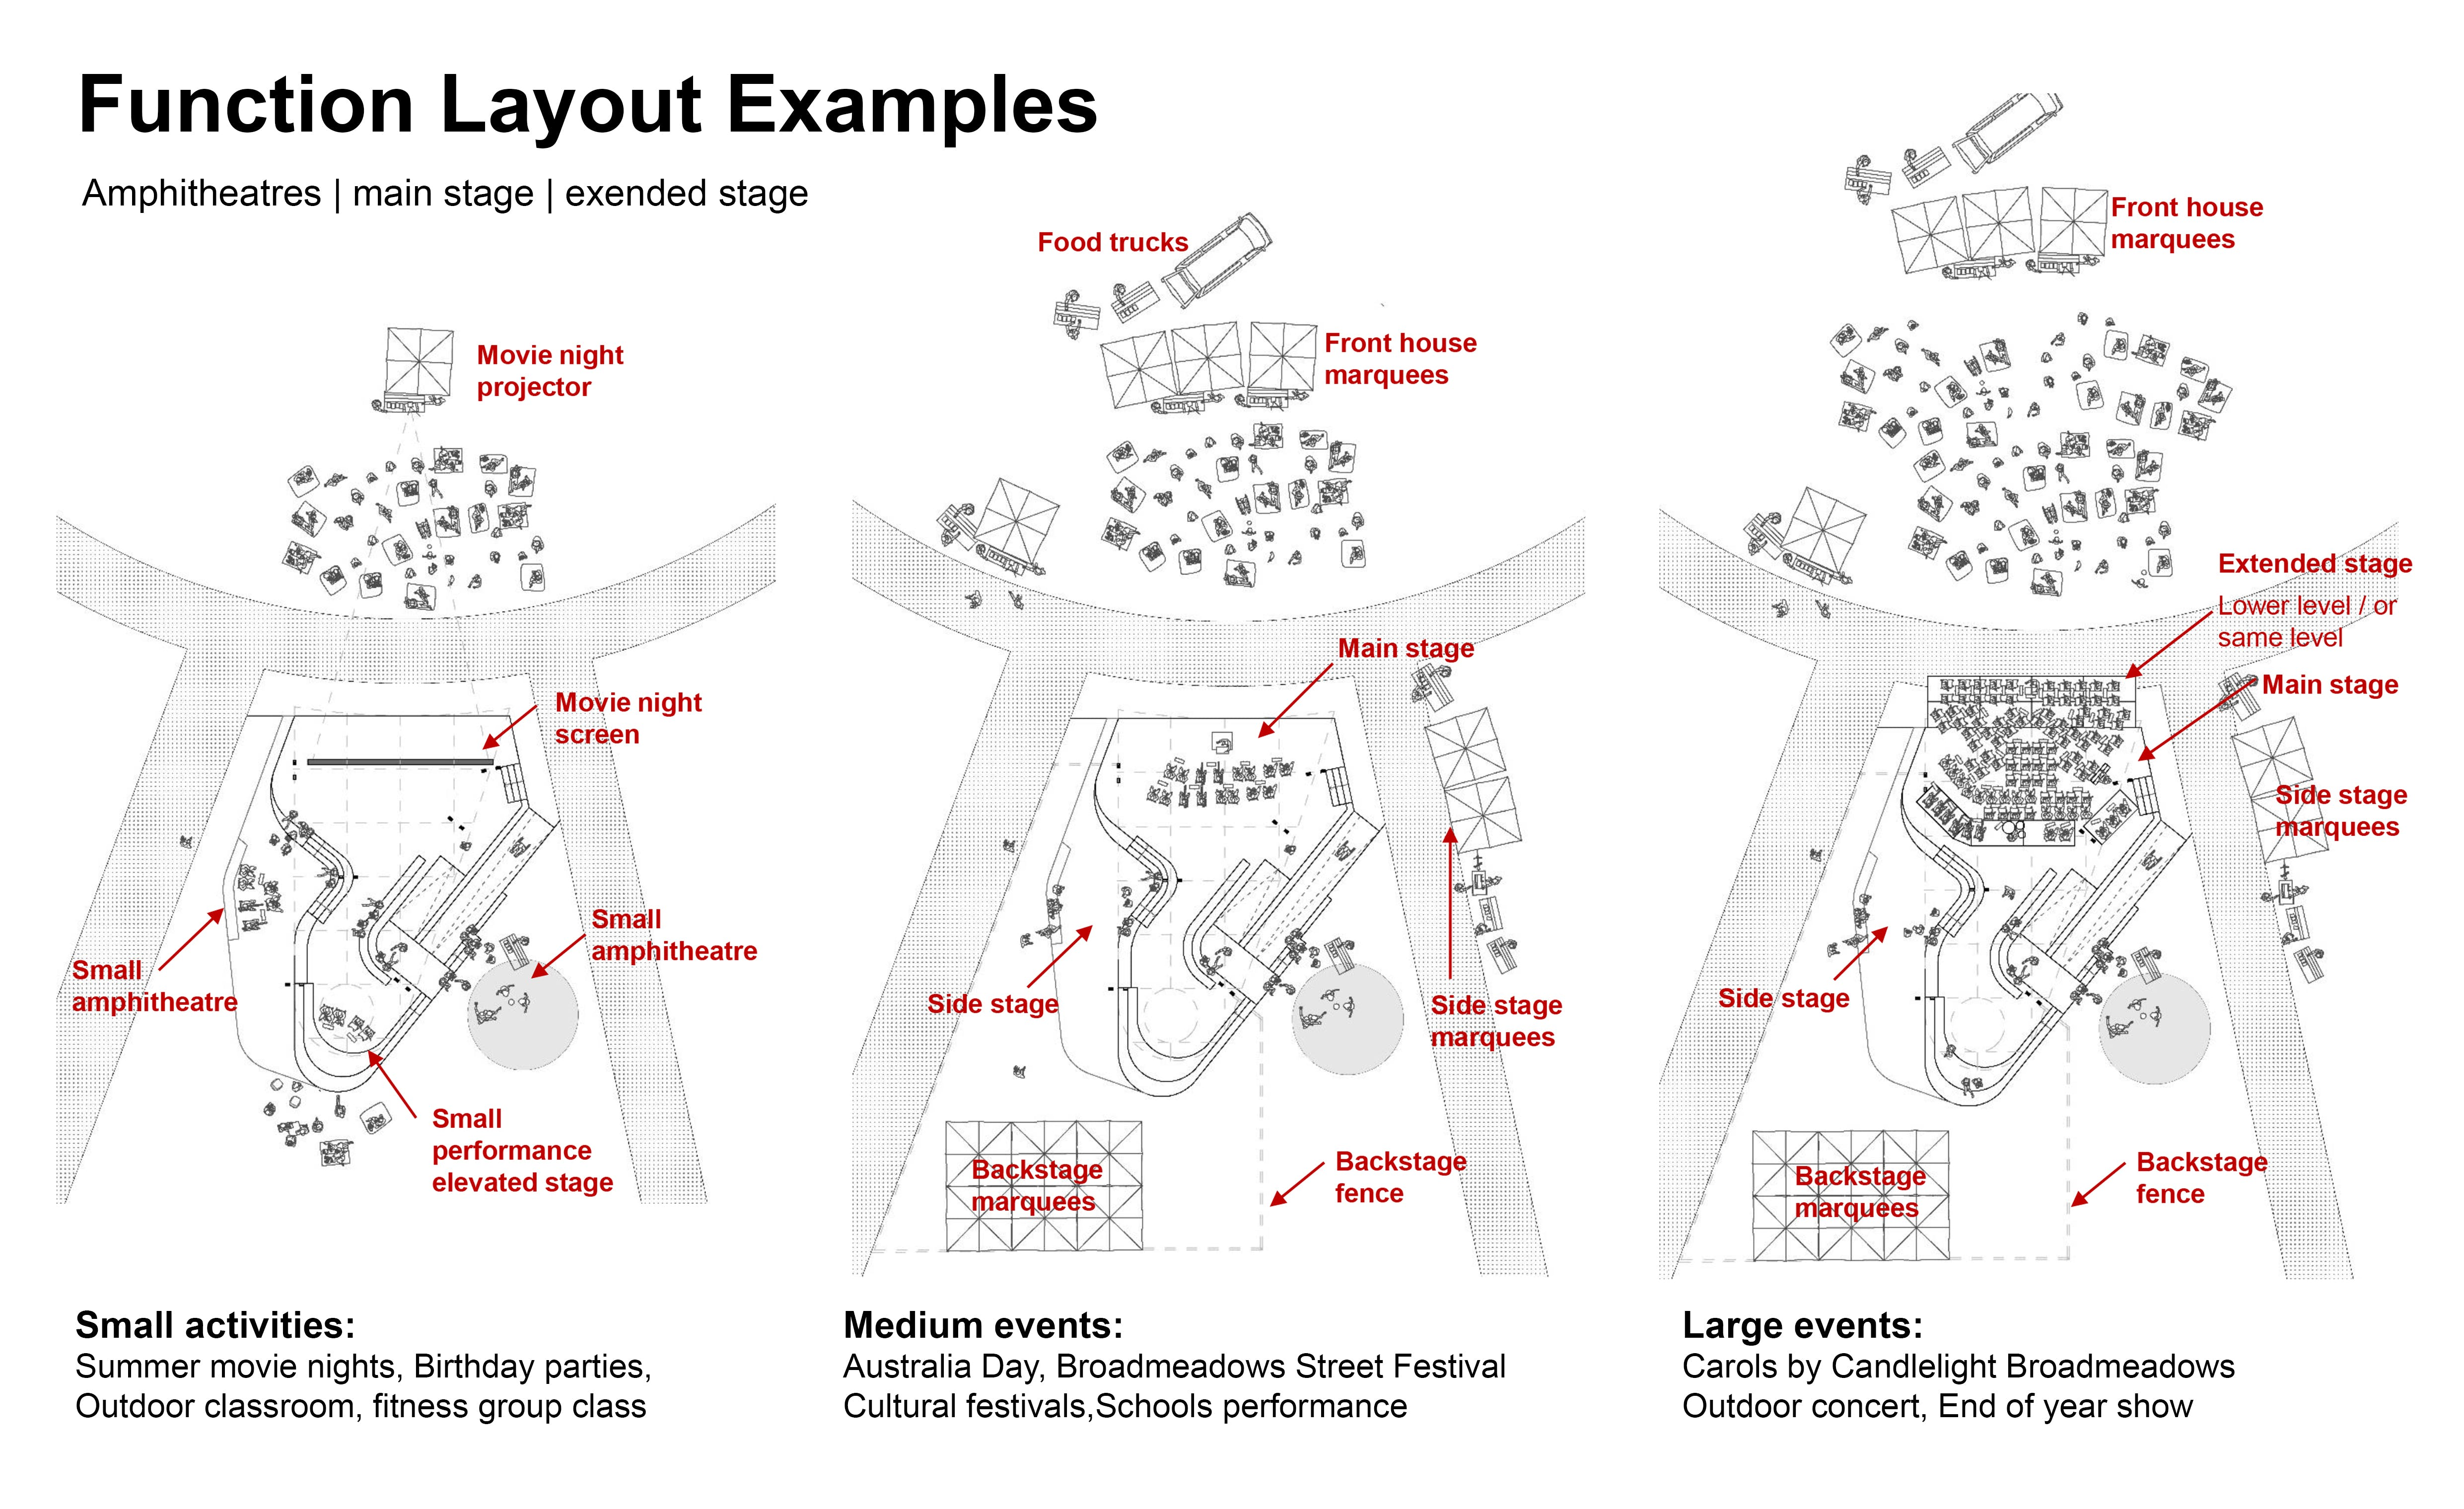 Function layout examples